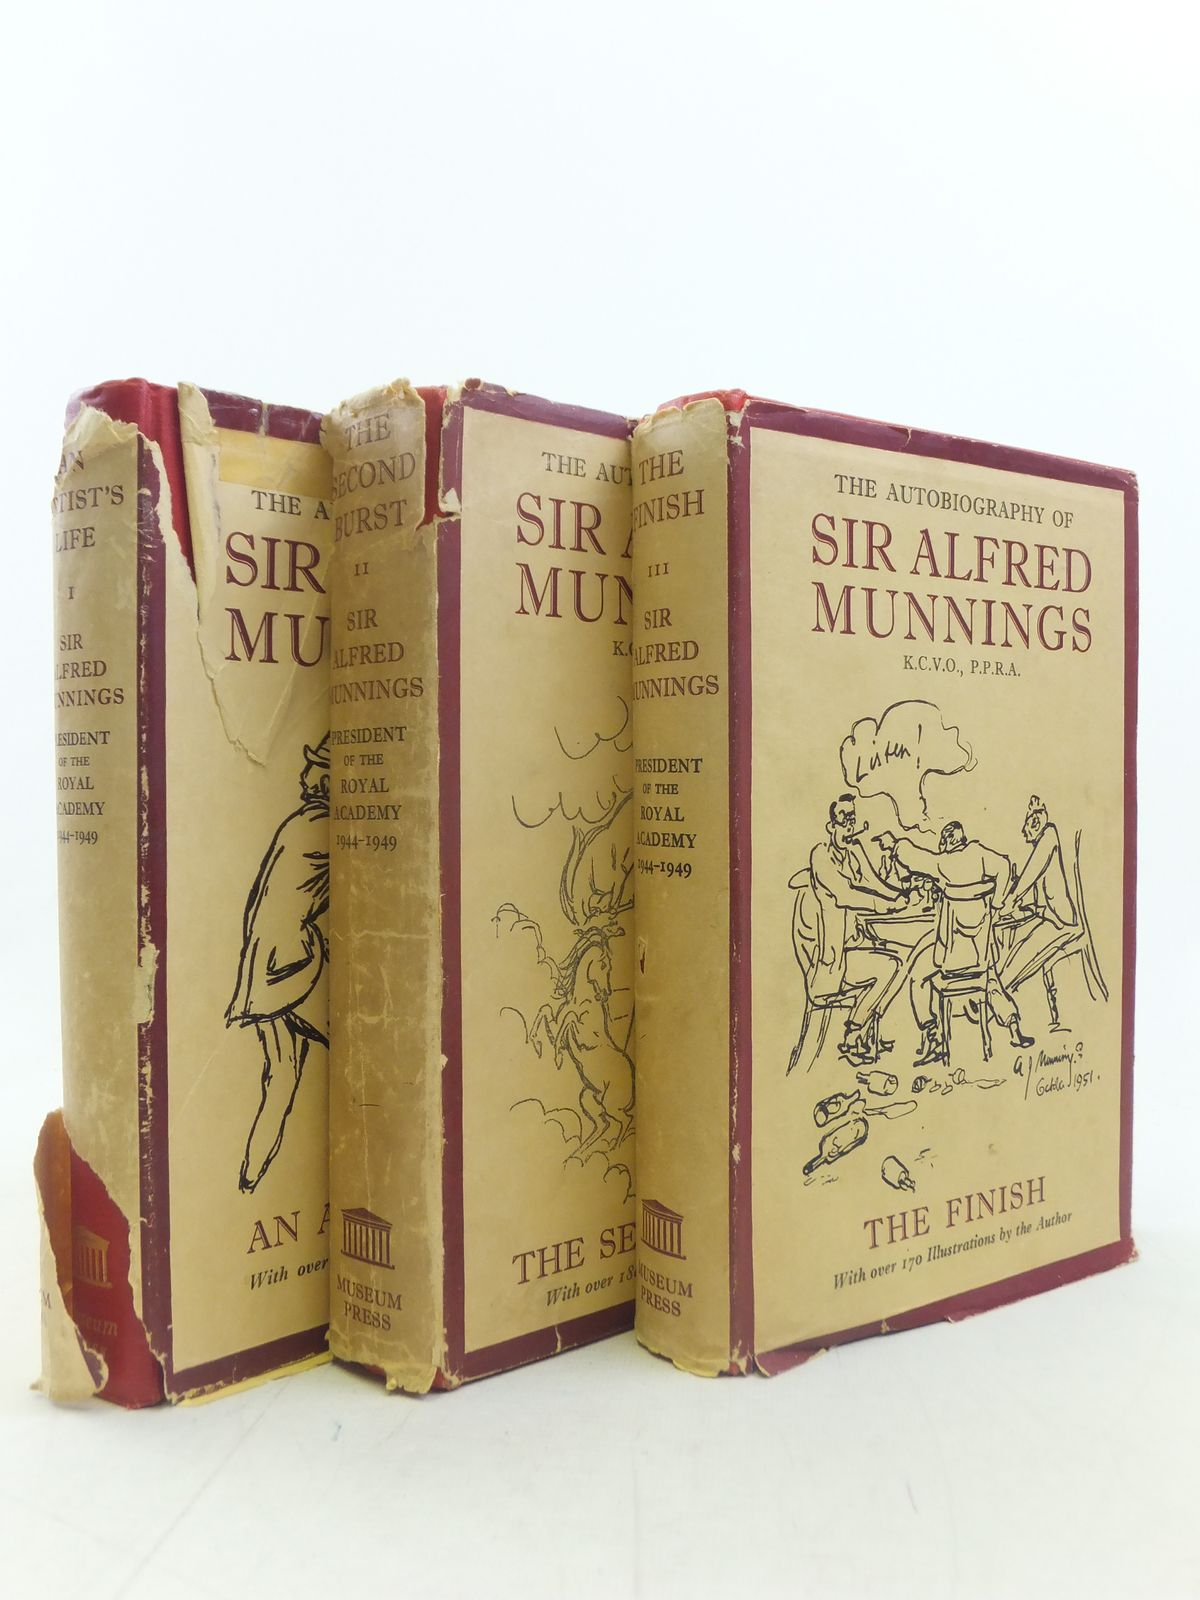 The Autobiography Of Sir Alfred Munnings 3 Volumes